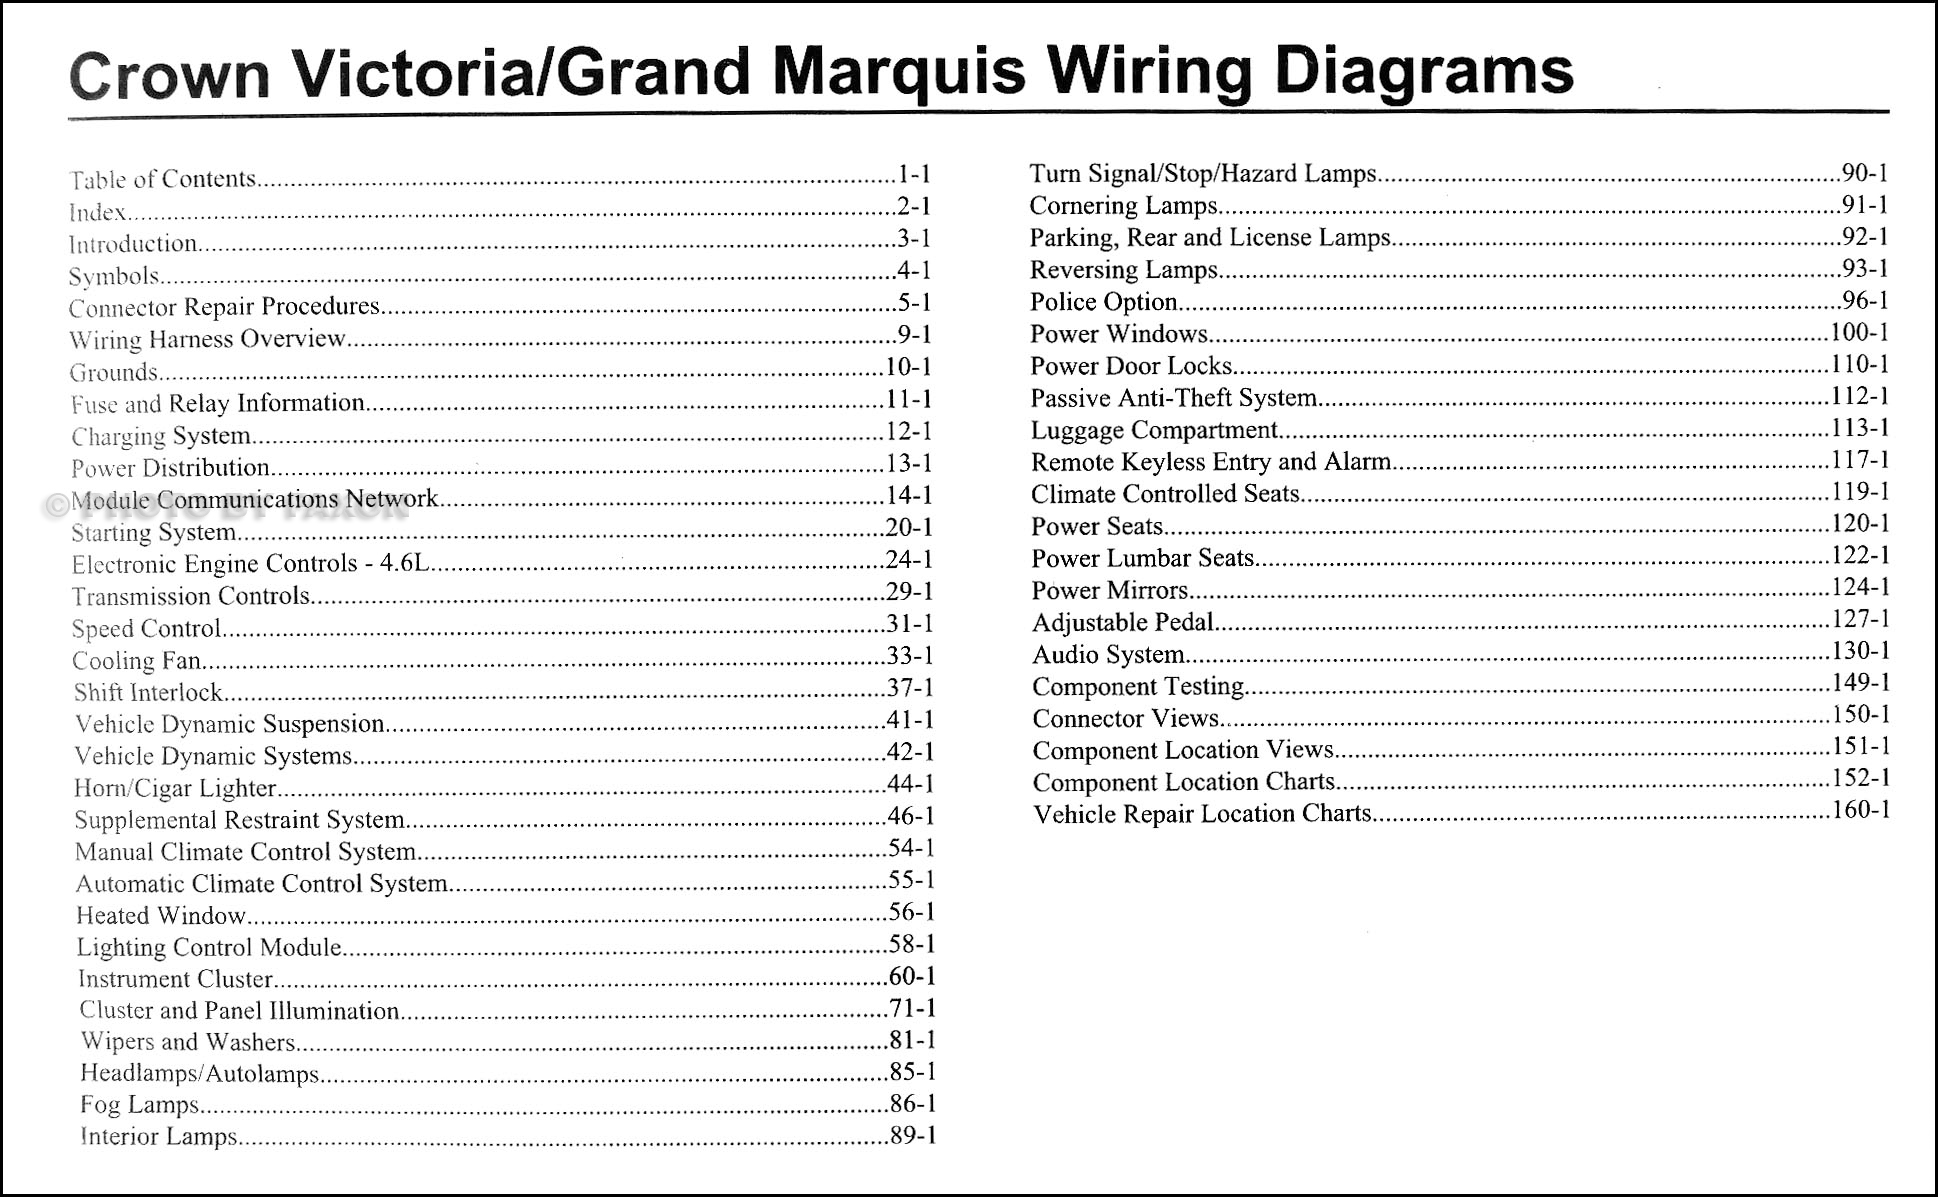 2009 Crown Victoria Grand Marquis Original Wiring Diagram Manual. 2009 Crown Victoria Grand Marquis Original Wiring Diagram Manual Table Of Contents. Ford. Radio Wiring Diagram 2010 Ford Police Interceptor At Scoala.co